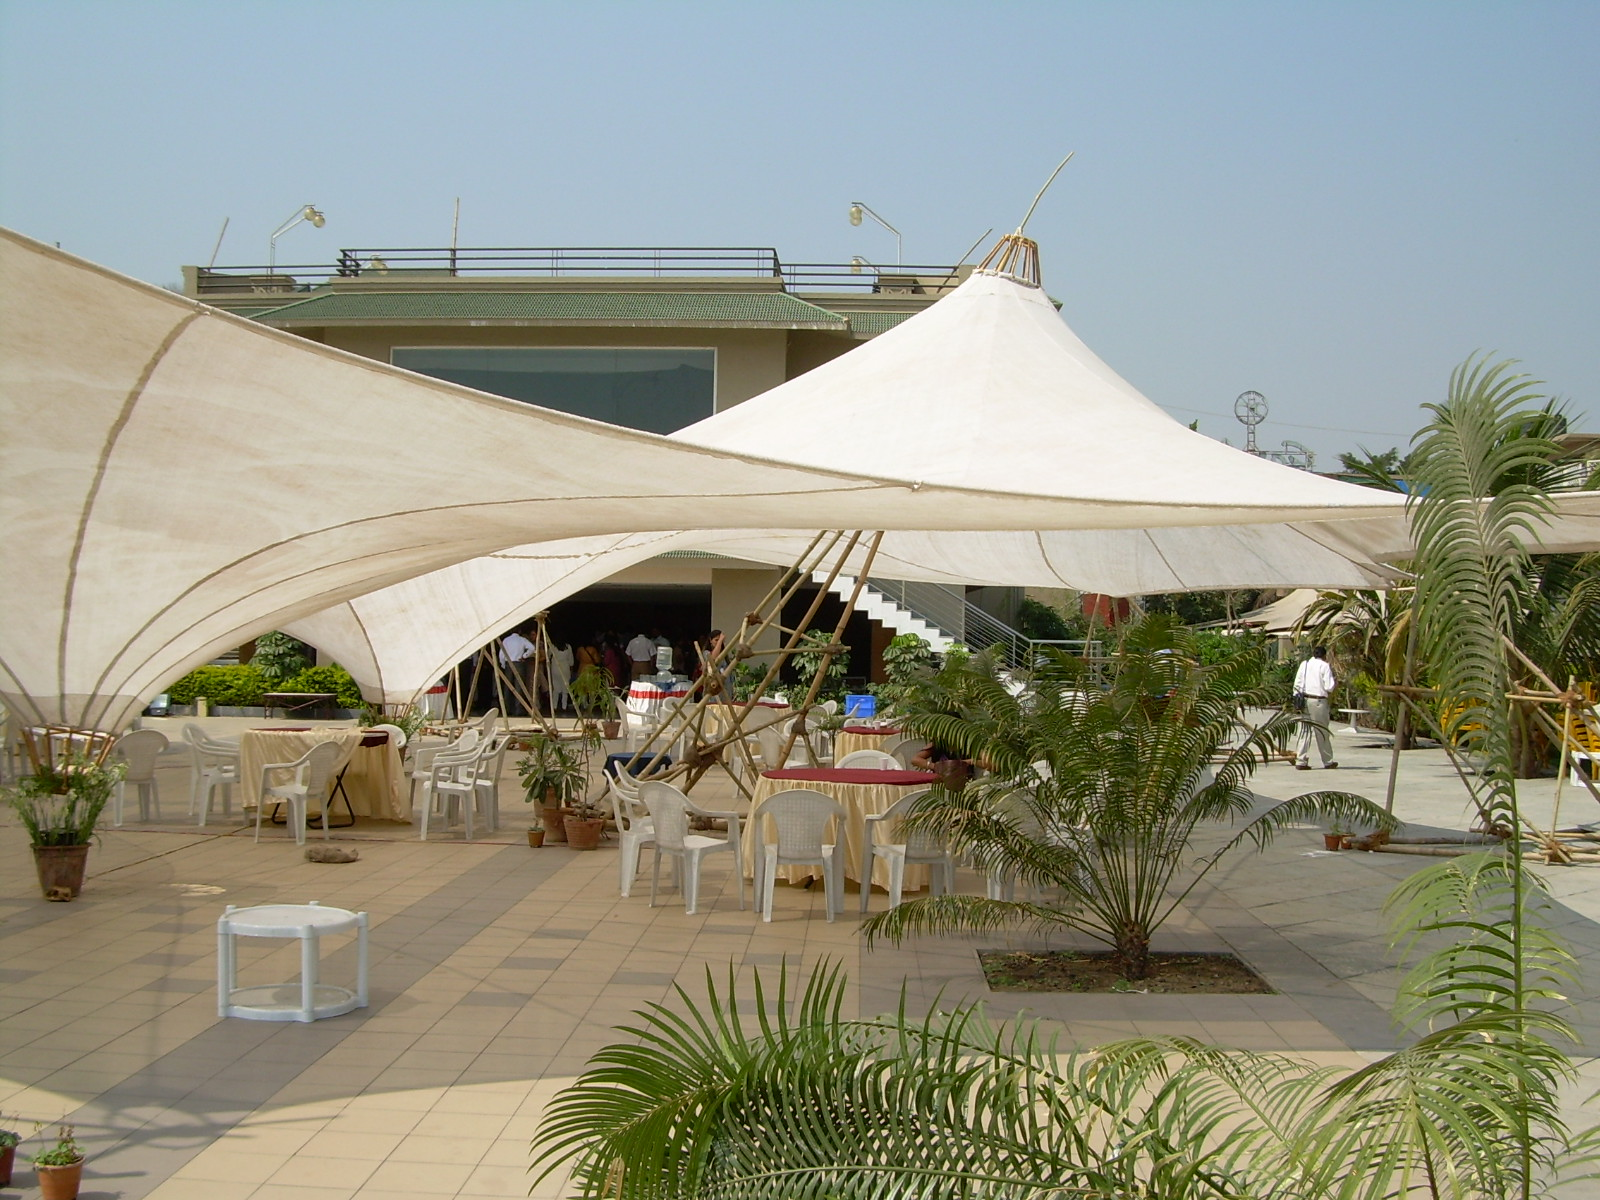 Architectural Side Pole Tensile Umbrella | TENSION FABRIC ROOFS | Pinterest | Architects & Architectural Side Pole Tensile Umbrella | TENSION FABRIC ROOFS ...